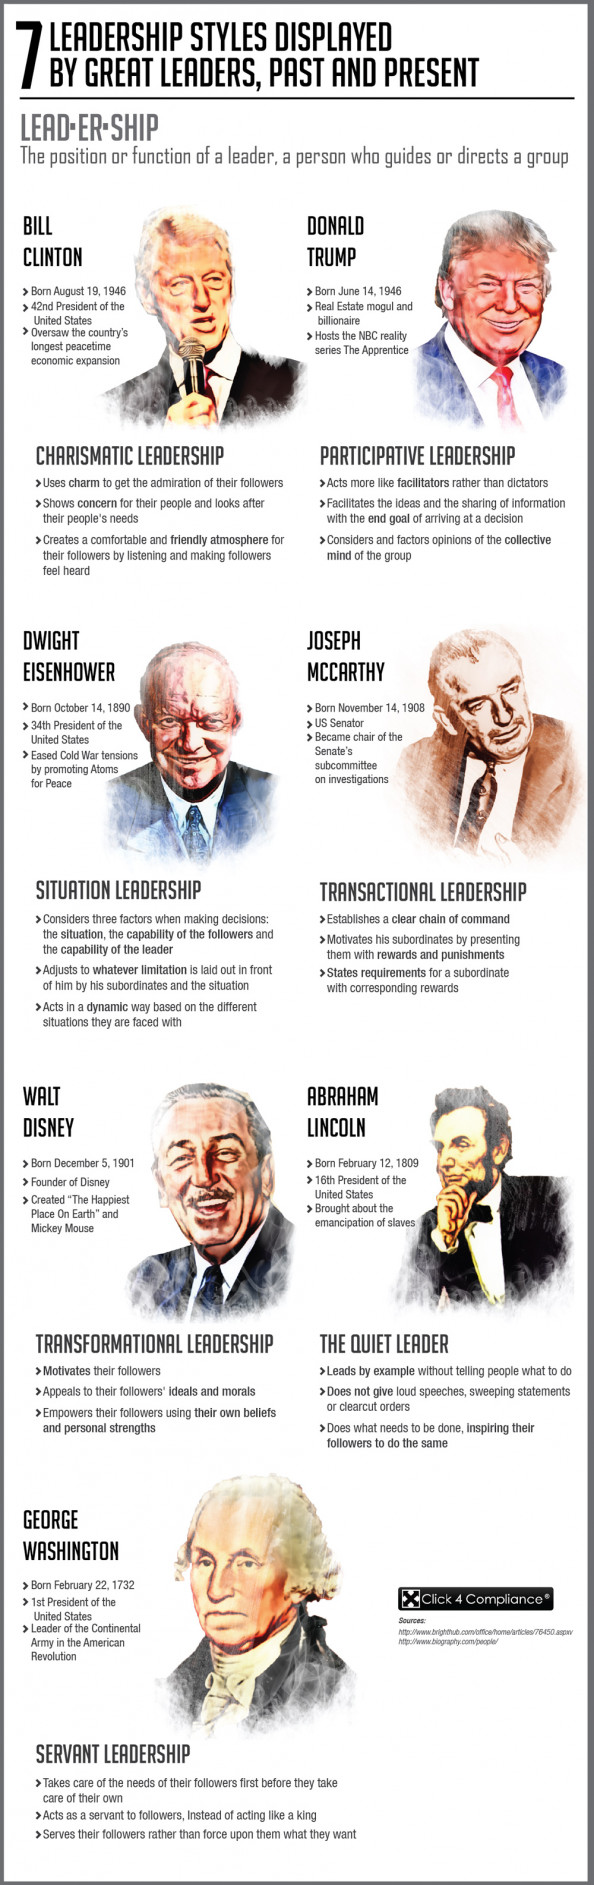 7 Leadership Style Displayed by Great Leaders Infographic